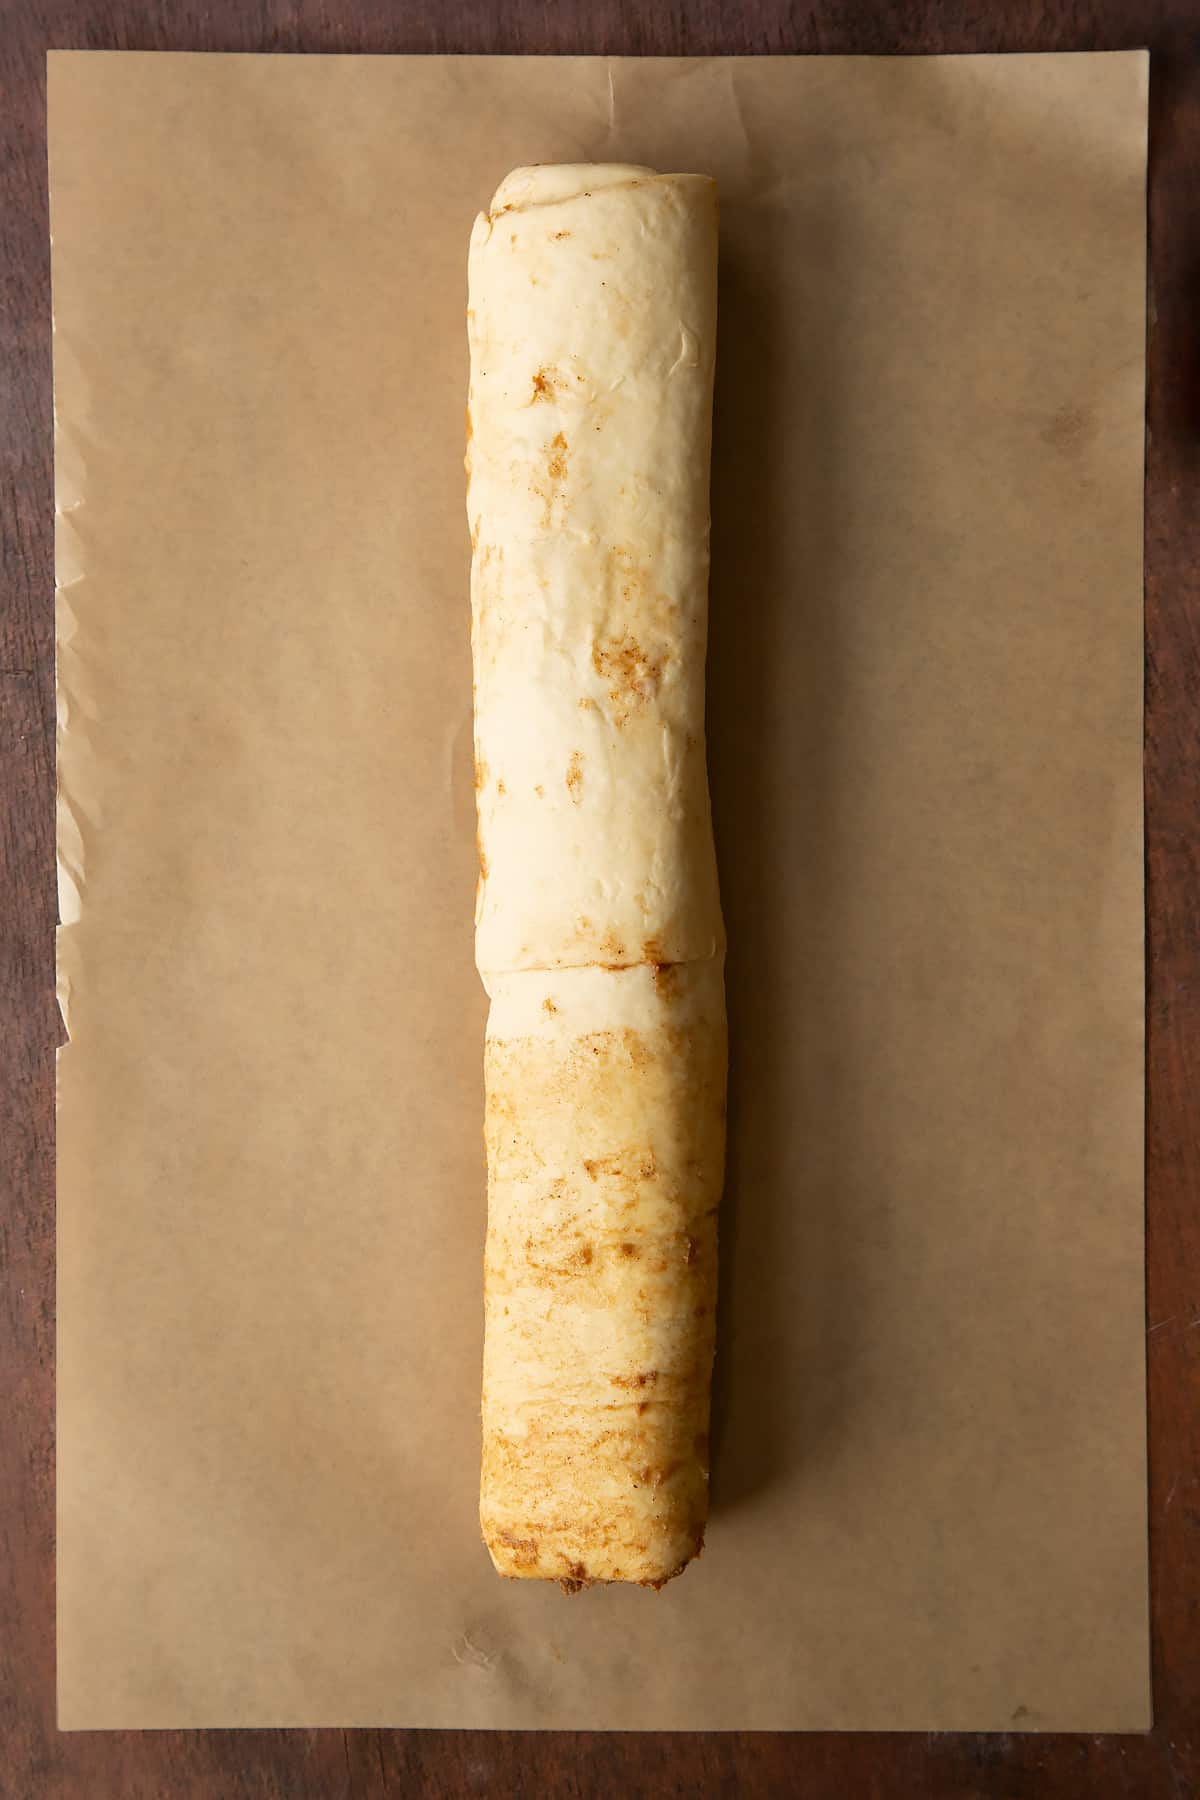 Cinnamon swirl dough rolled along the length to create a long sausage.